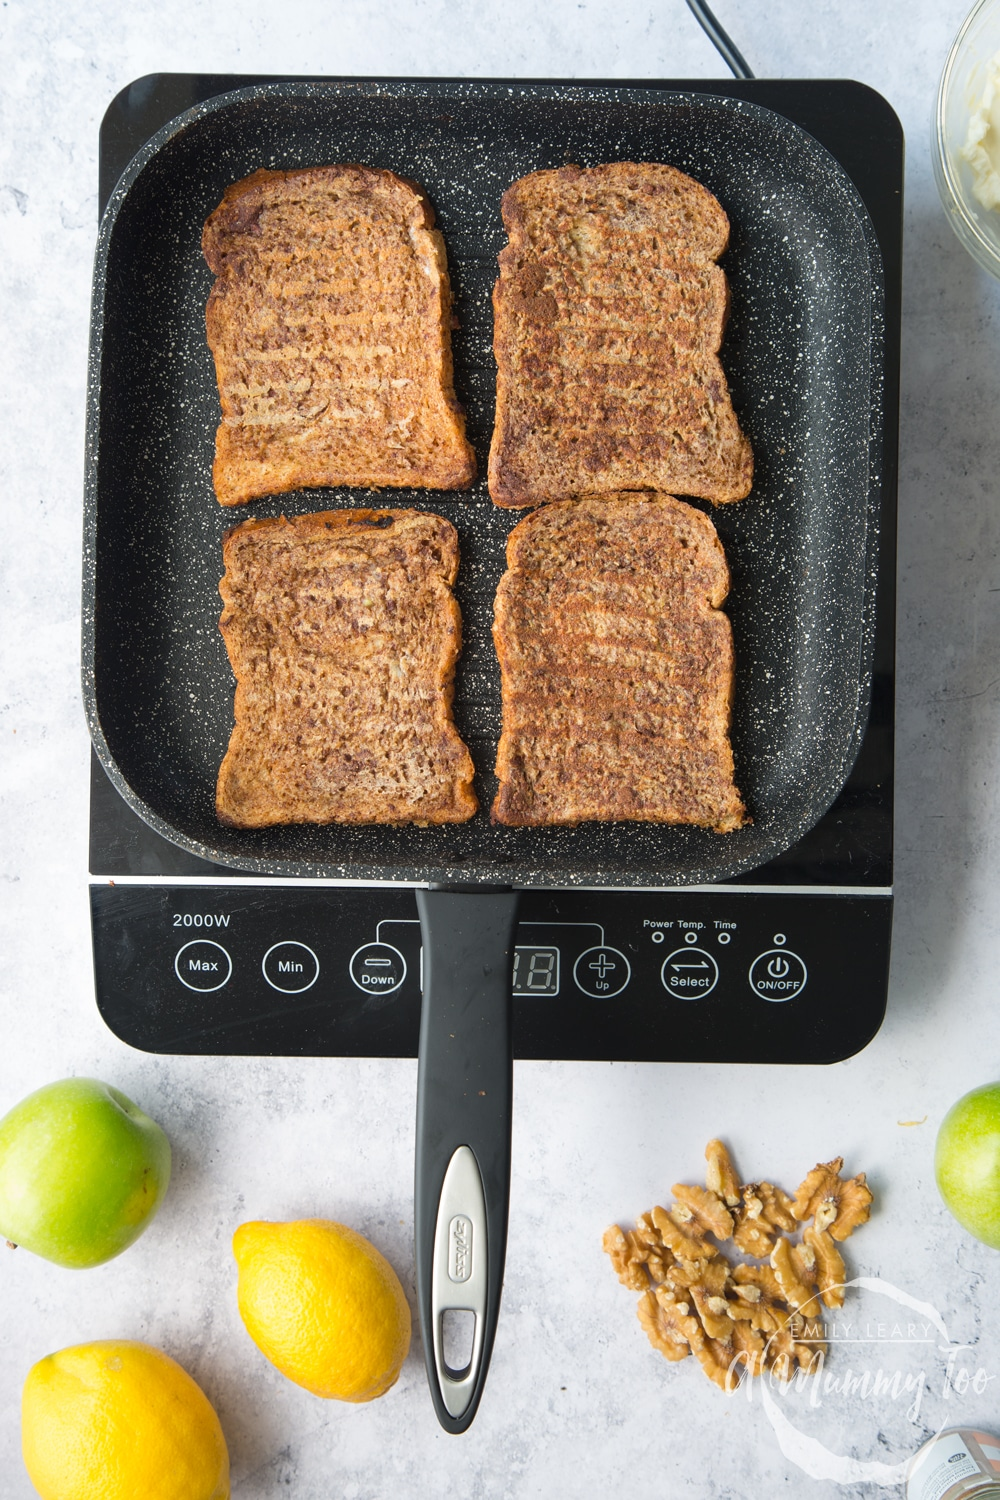 Frying cinnamon French toast in a griddle pan